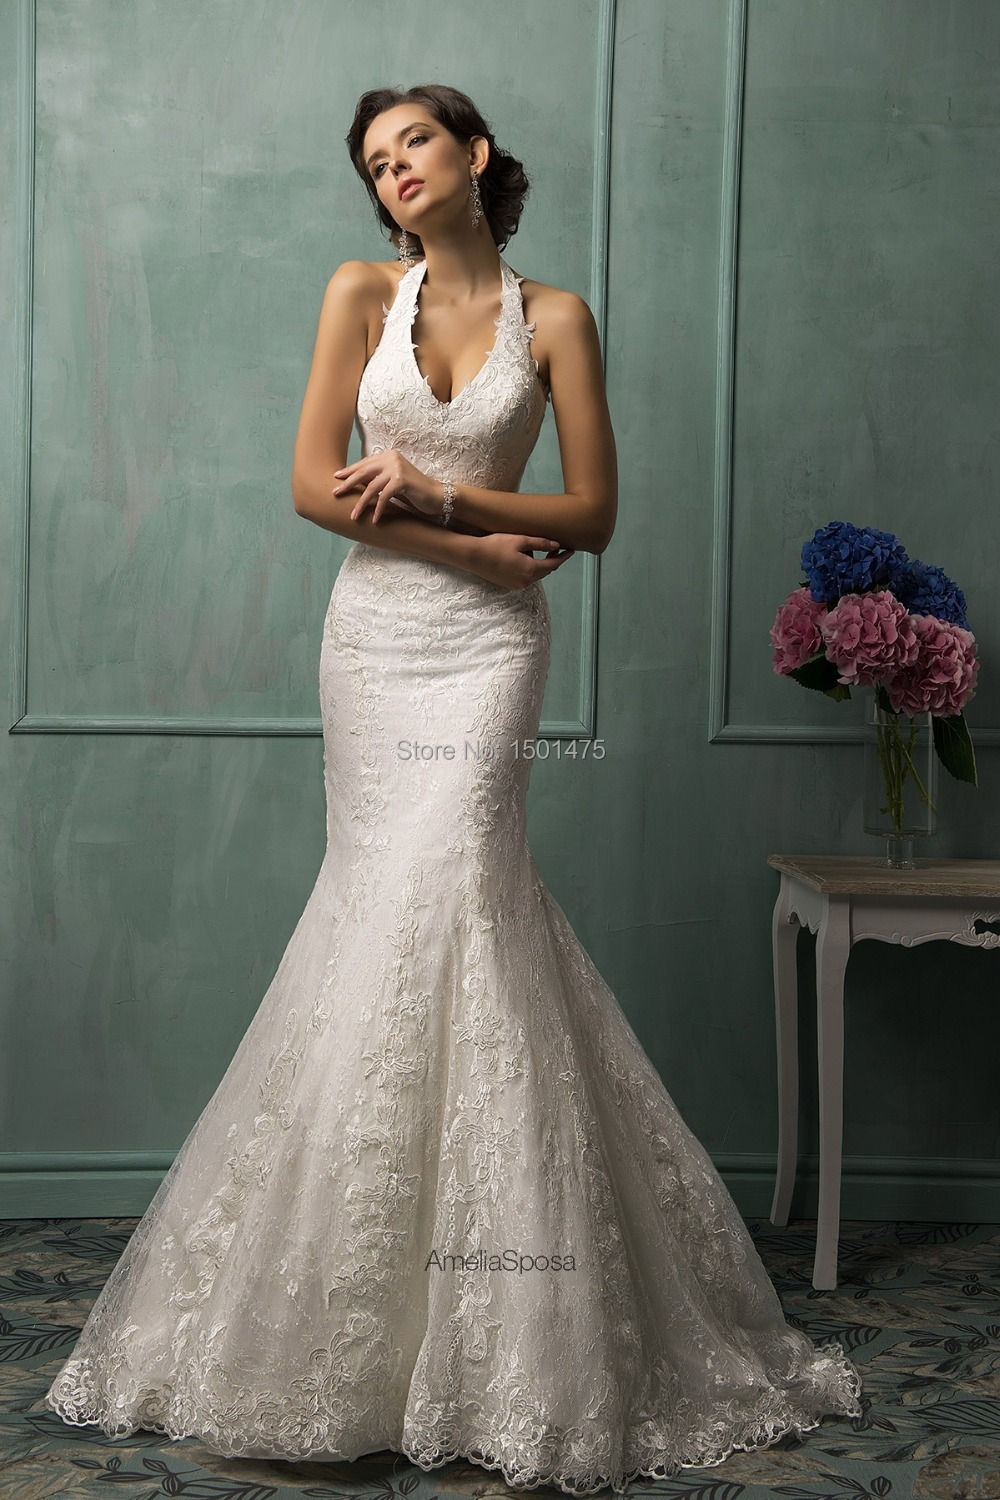 halter top wedding dresses chiffon pleated bodice halter wedding gown with sexy side slit